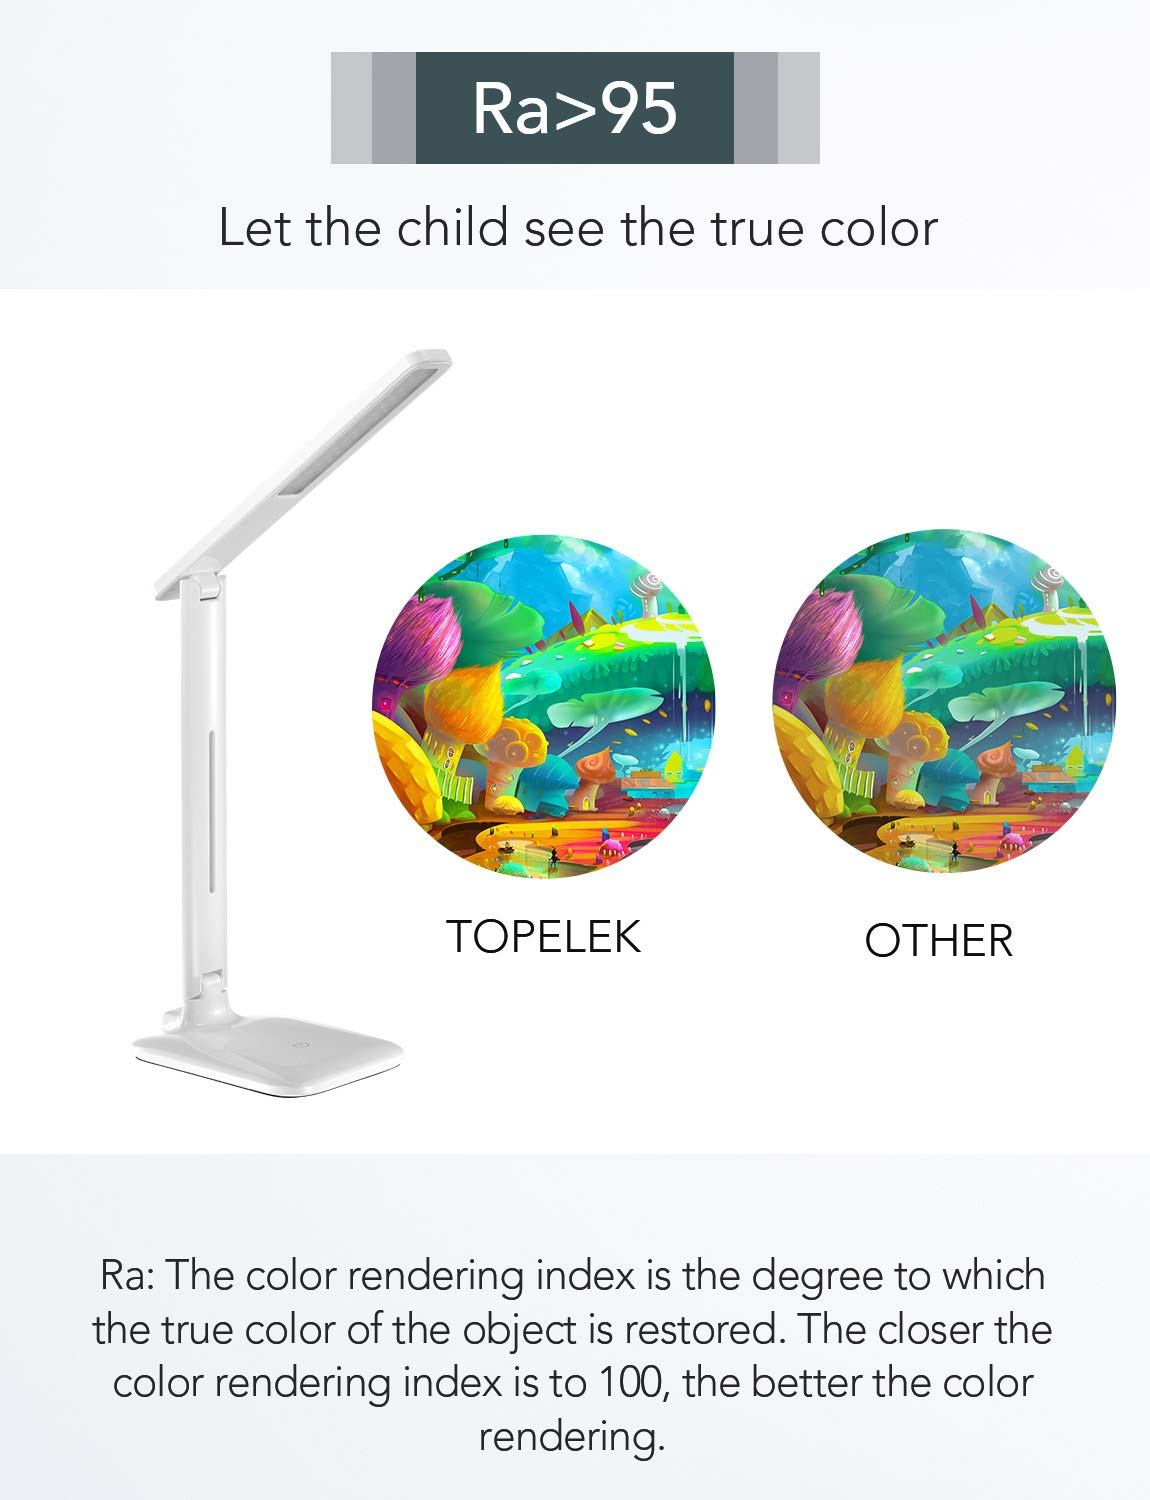 Perfect for Kids and Adults Dimmable Office Lamp with 9 Brightness Working Touch Control LED Desk Lamp TopElek Eye-caring Folding Desk Light Warm//Cool White for Reading Studying